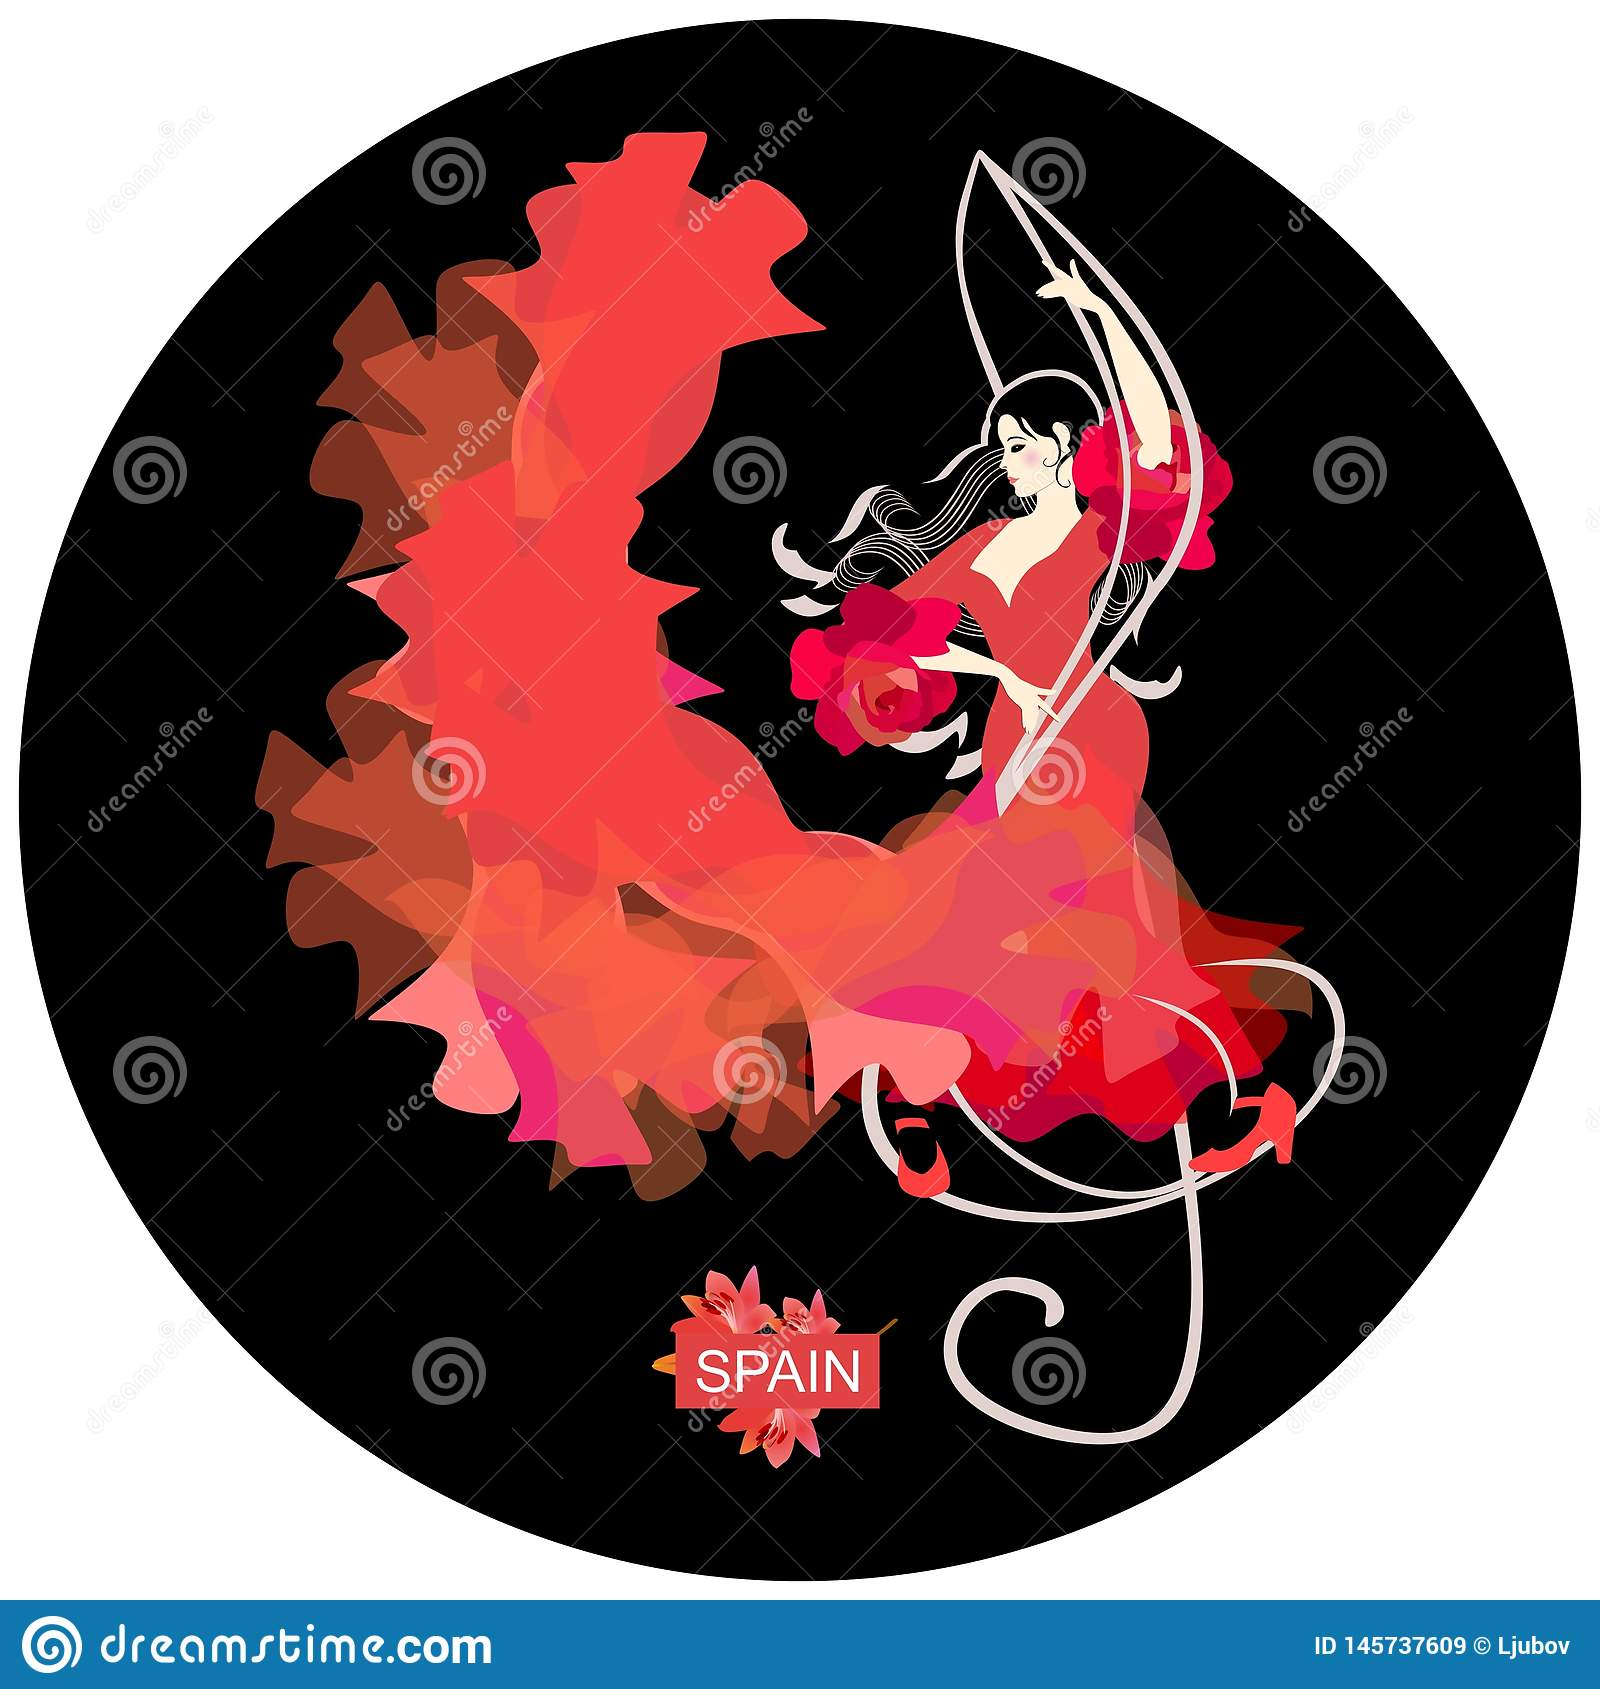 Flamenco logo round shape. Young Spanish woman with curls in form of musical rulers, dressed in traditional red dress, dancing